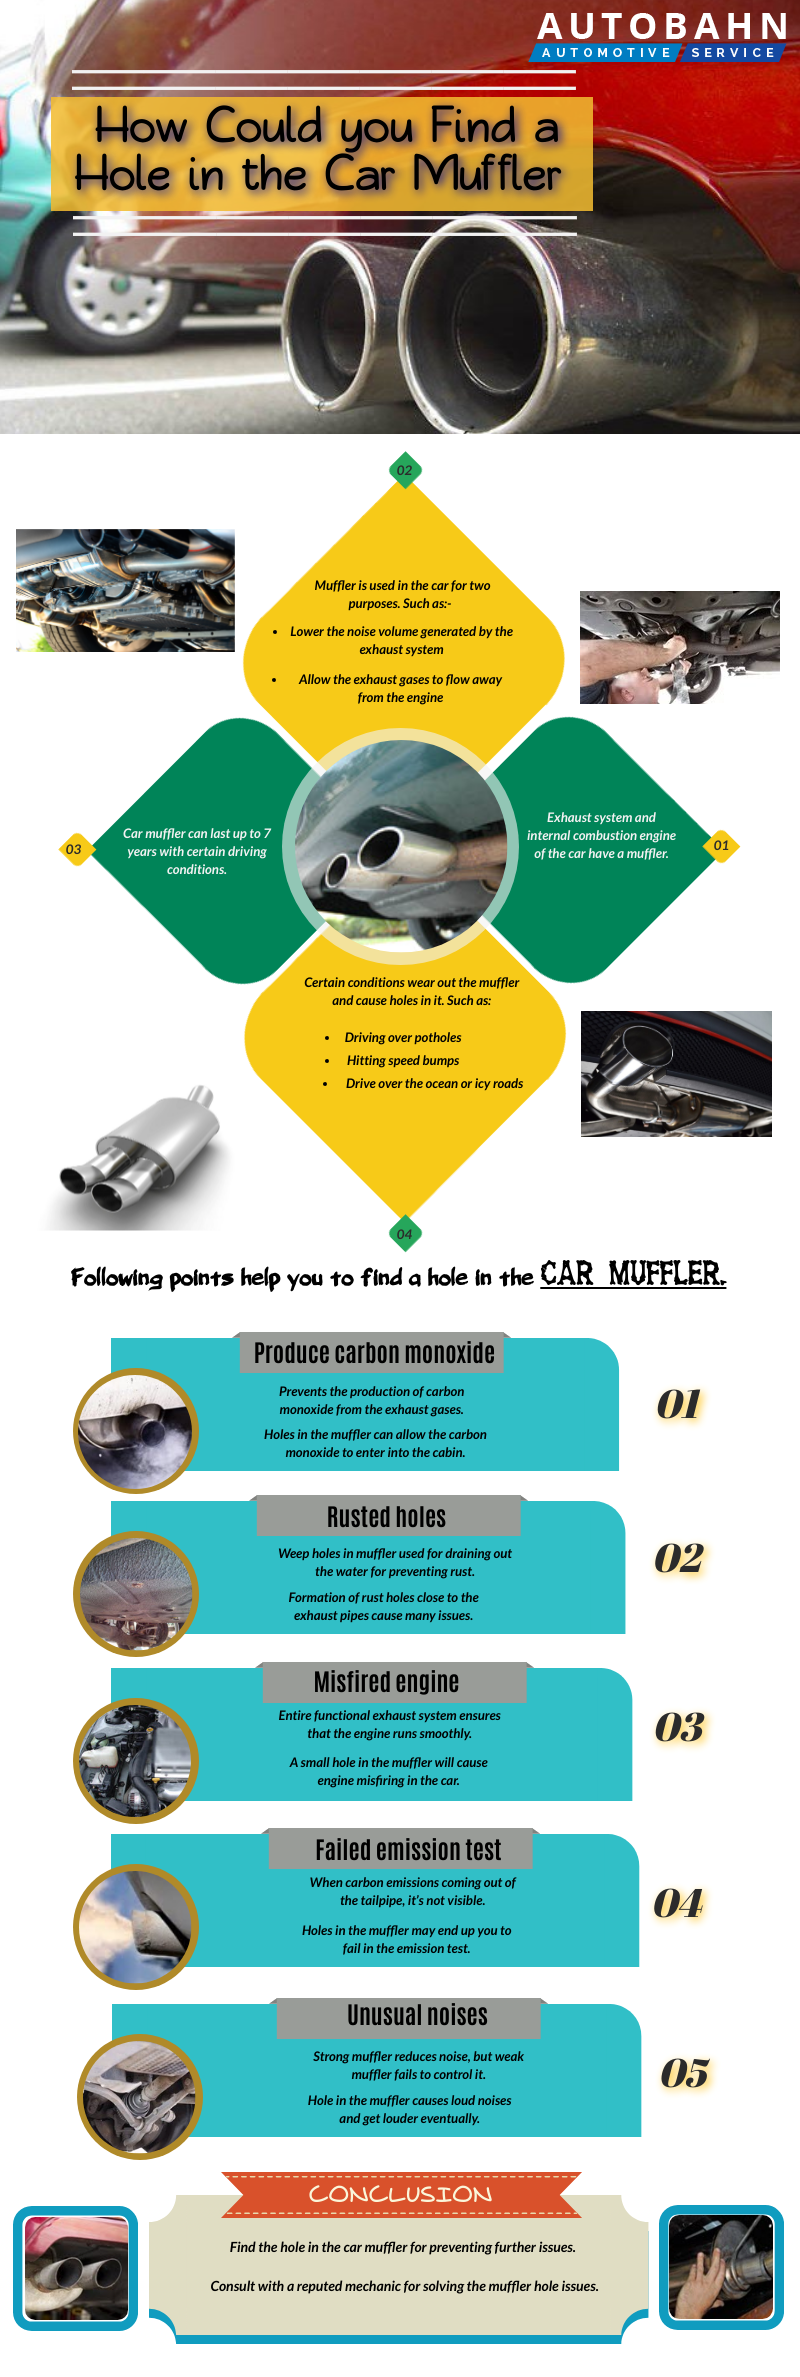 How Could You Find A Hole In The Car Muffler Car Muffler Used Cars Muffler